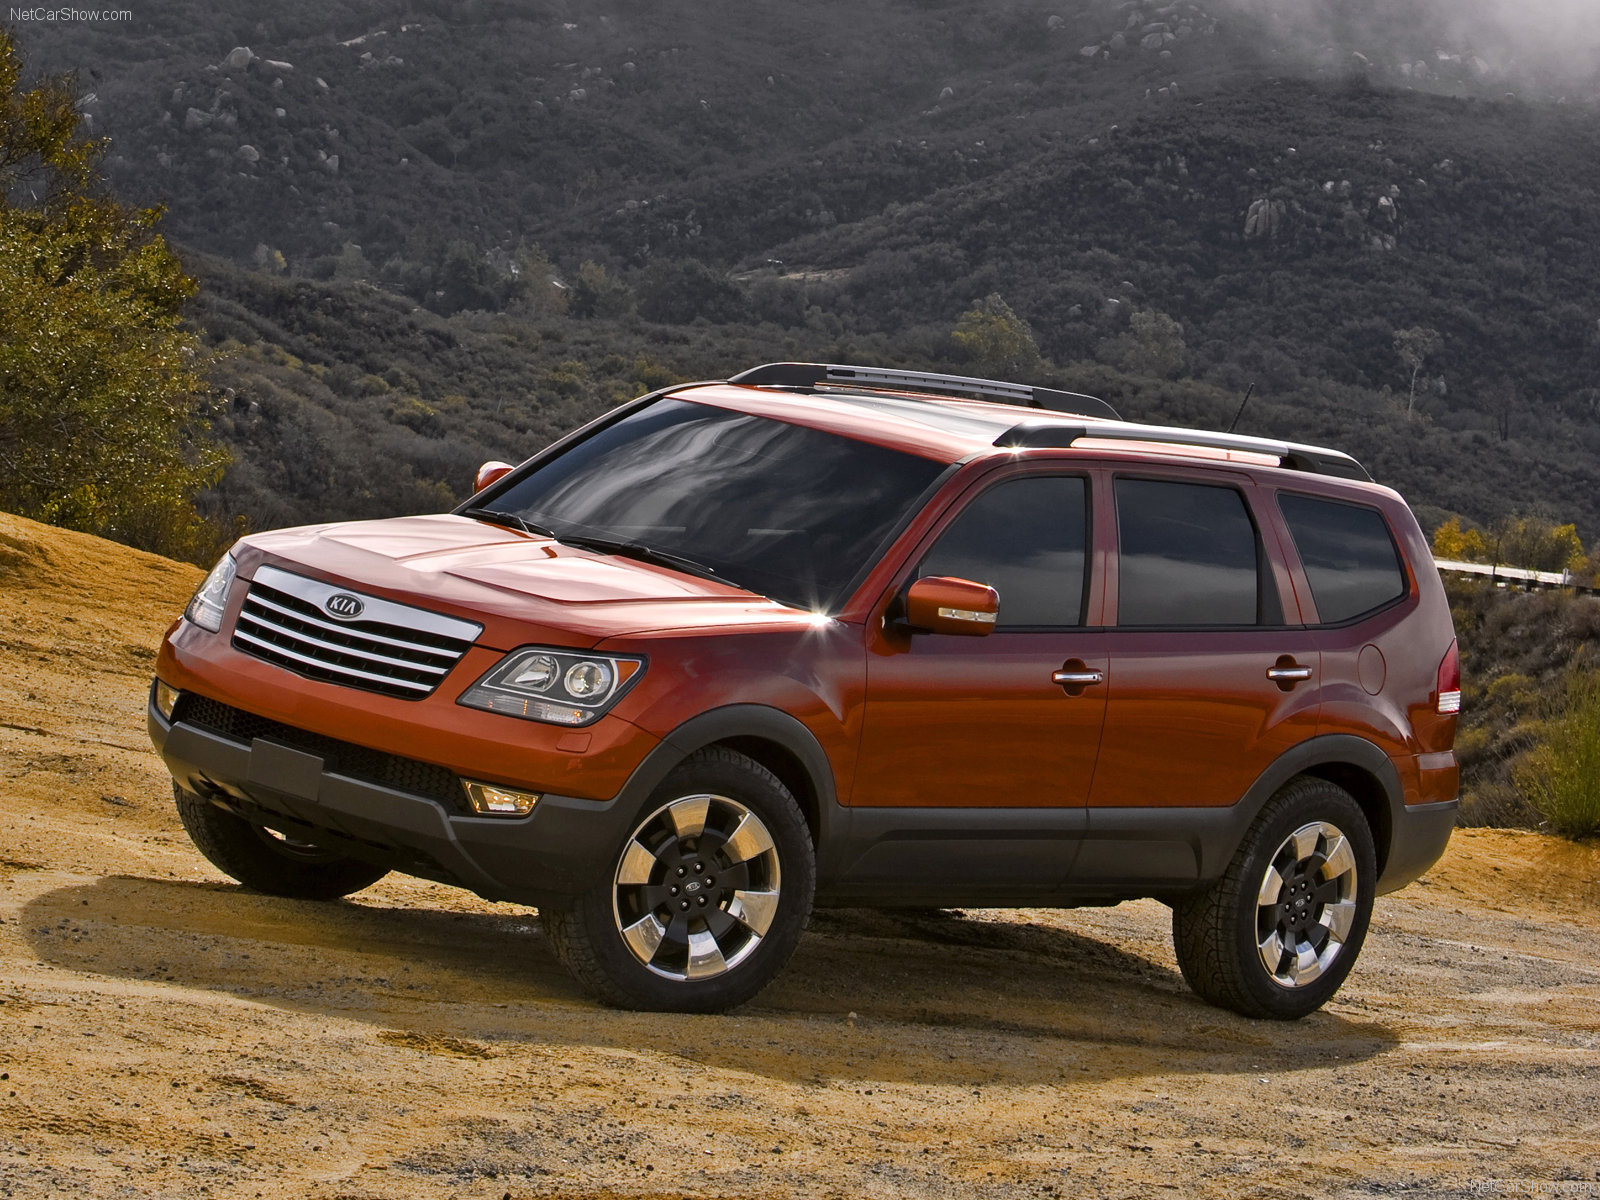 Kia Borrego photo 52462